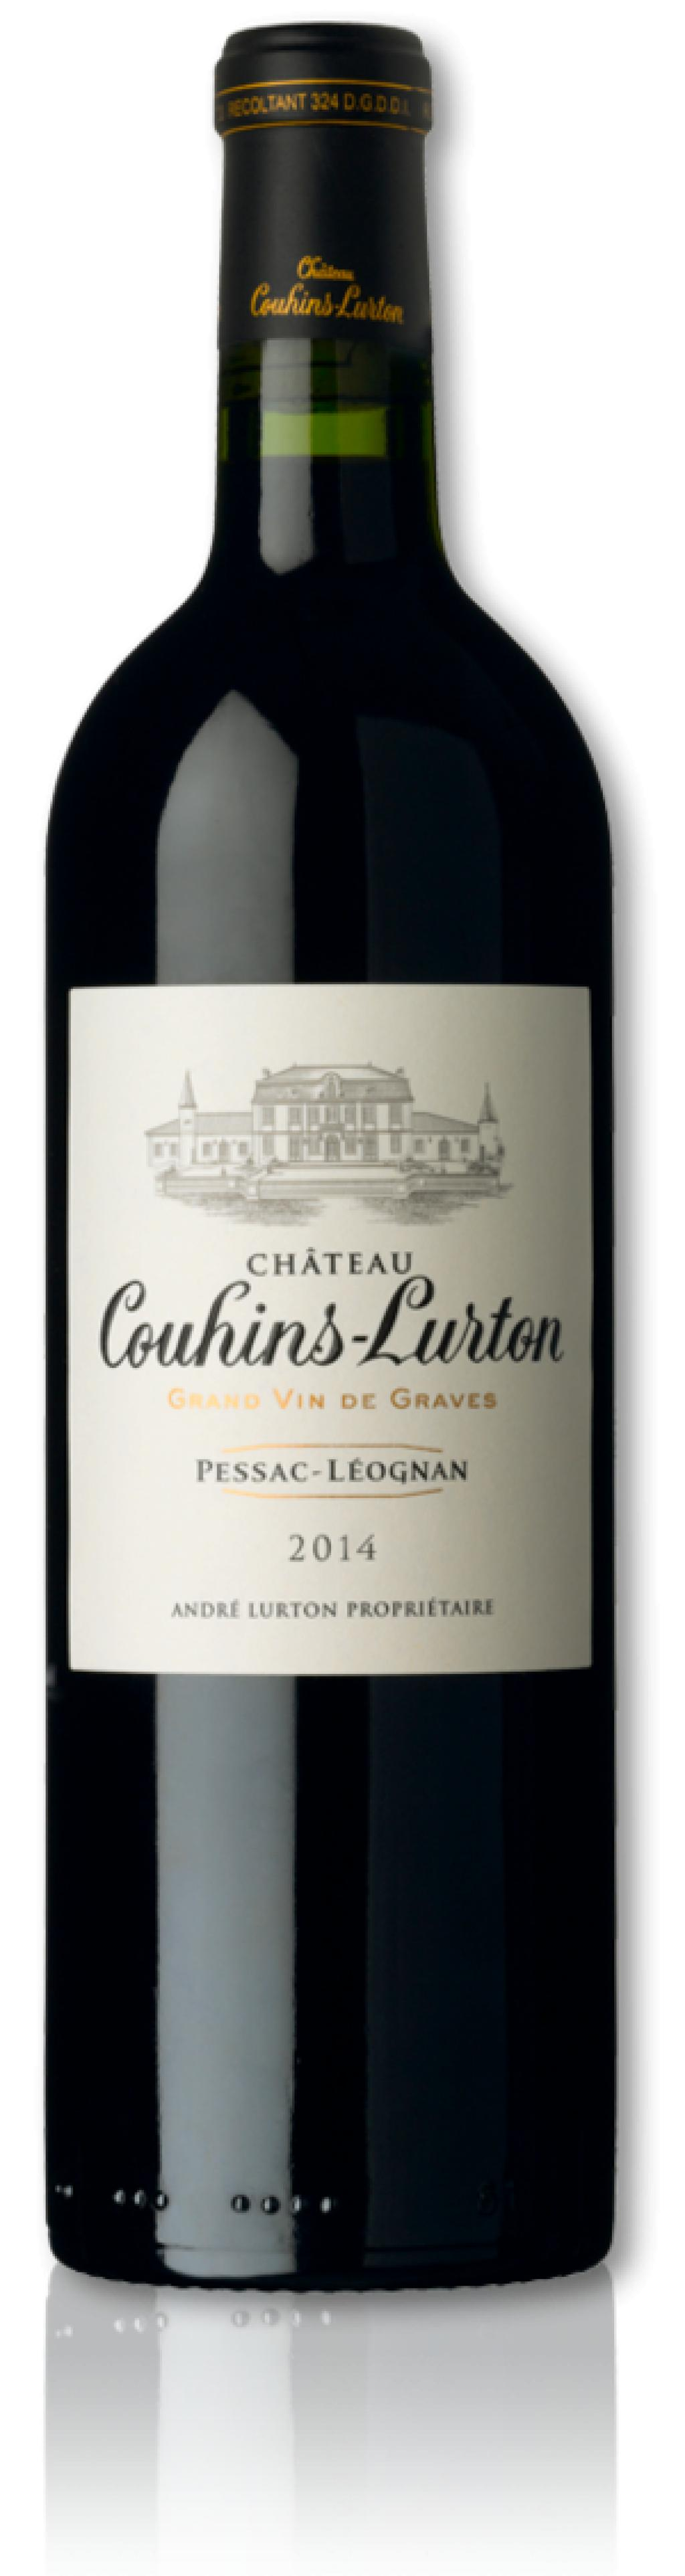 Château Couhins-Lurton Red Chateau : Château Couhins-Lurton Even if Couhins-Lurton is only Cru Classé in white, André Lurton and his team make it a point to develop a very noble red wine.